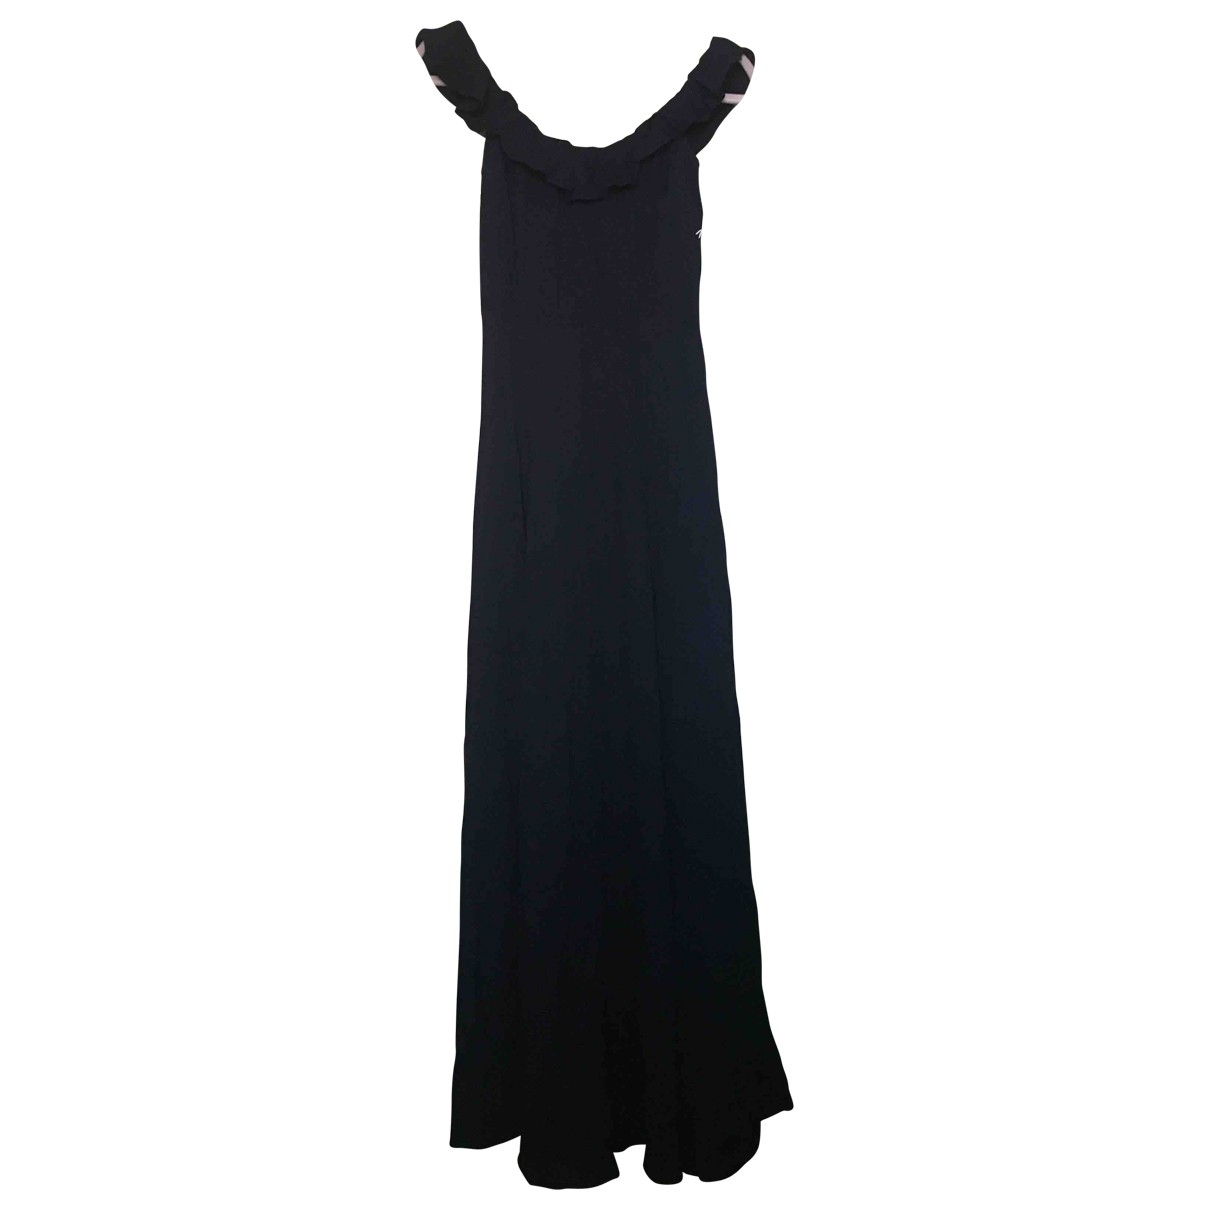 Reformation \N Navy dress for Women 4 US